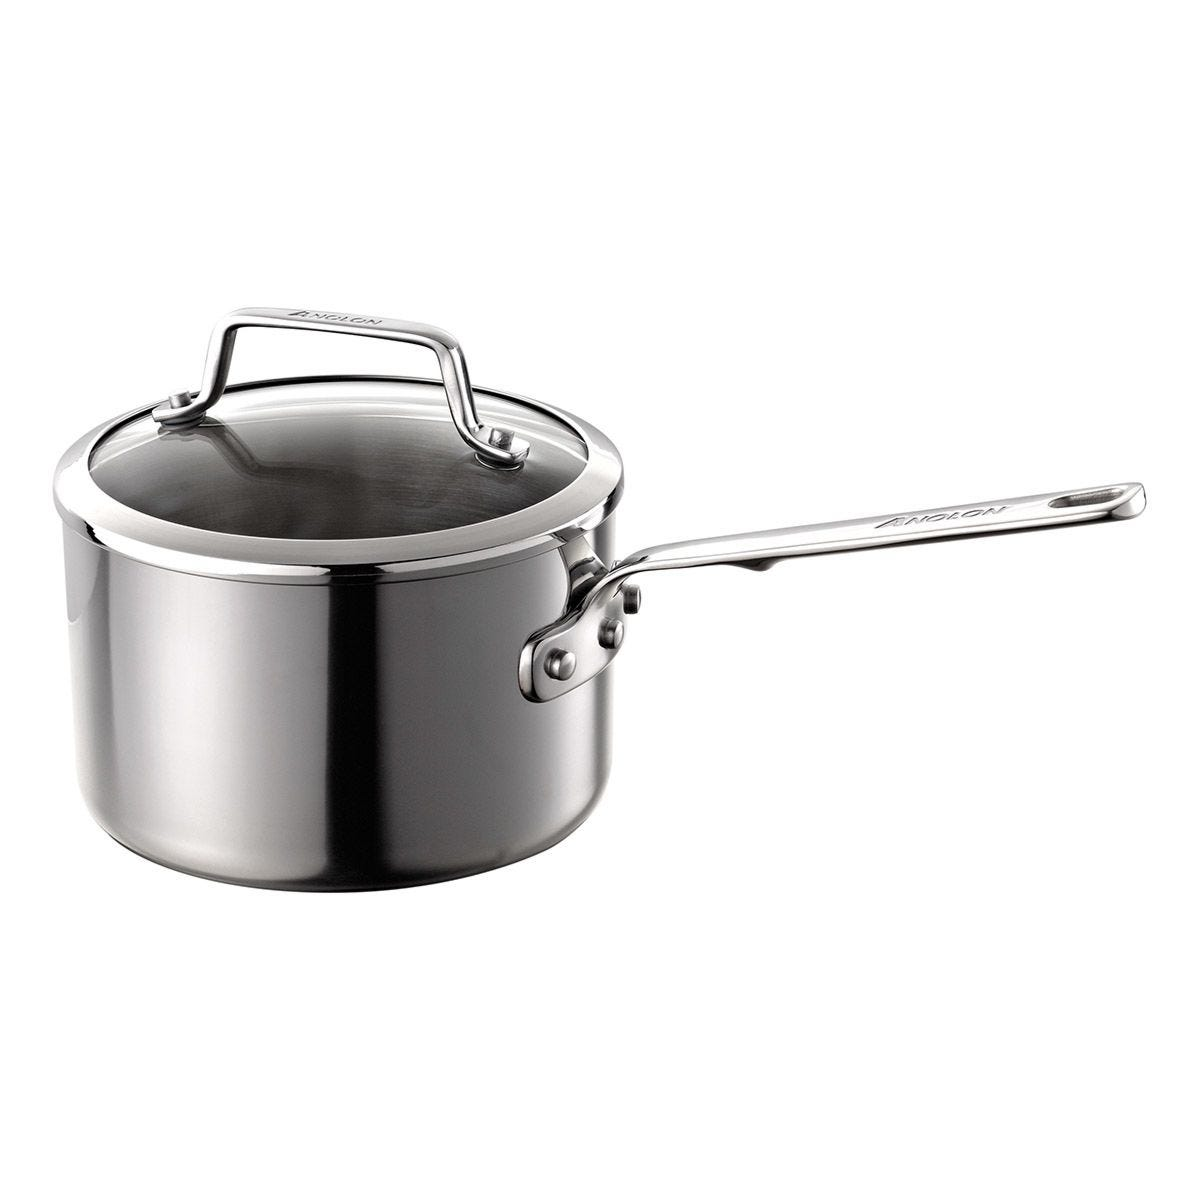 Anolon Tri Ply 18cm Saucepan - Stainless Steel